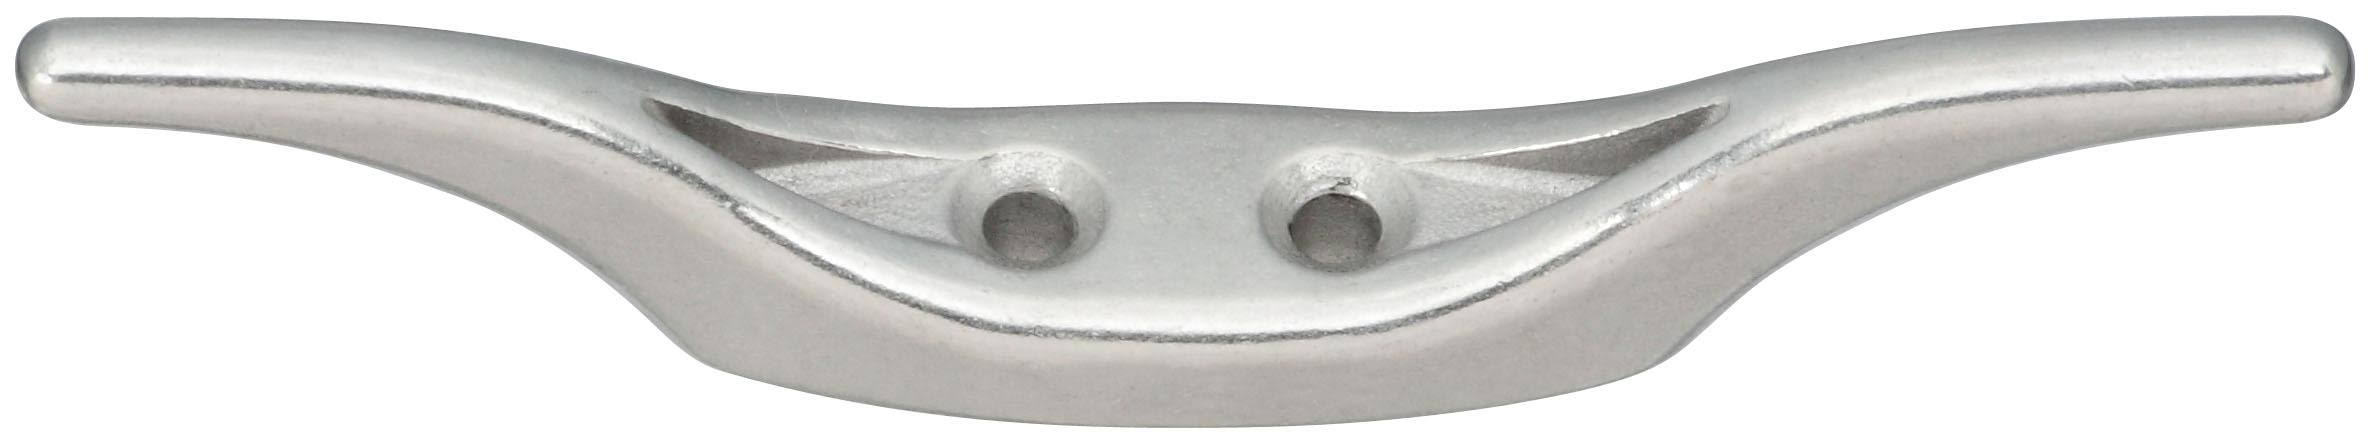 National Hardware N348-474 Rope Cleat, Stainless Steel, 4-1/2""